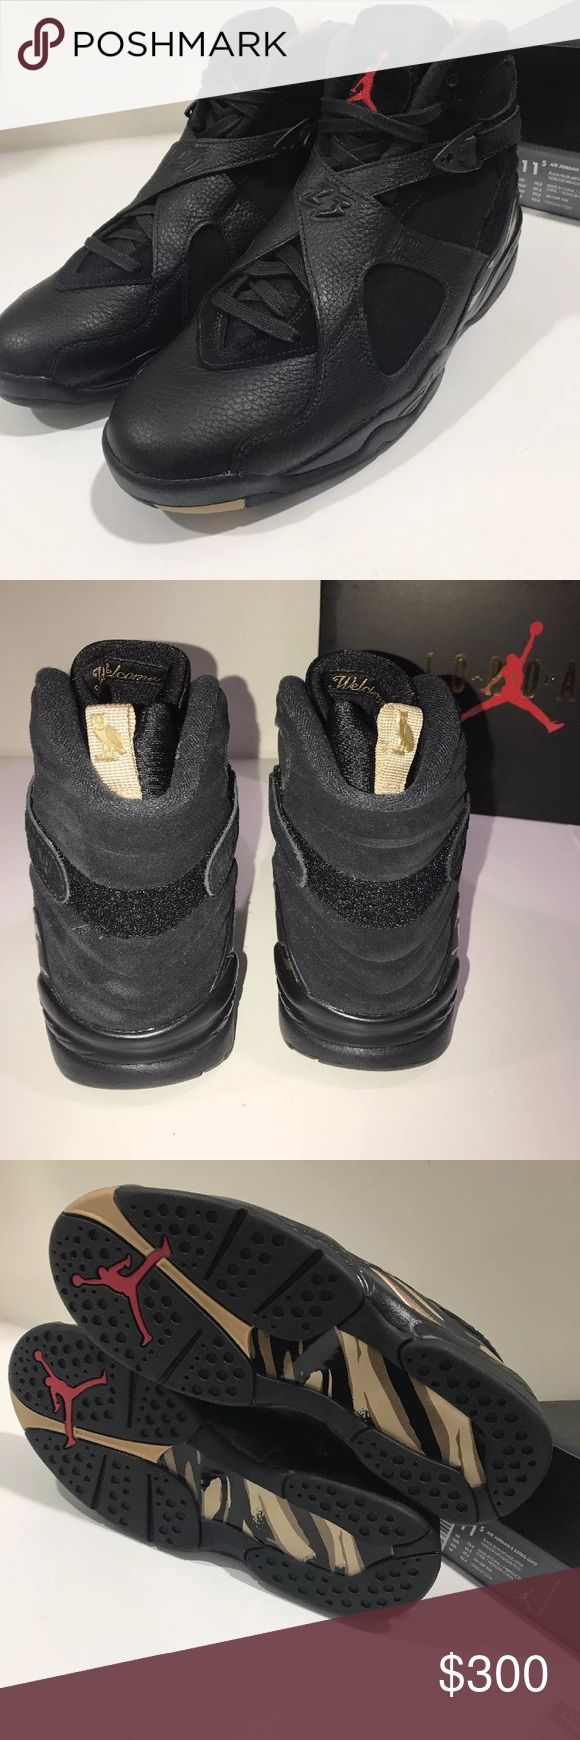 Air Jordan Retro 8 October's Very Own OvO Black DS Dead stock. Your feet will be first feet in sneakers. 1000% Authentic or Double your money back . Price is negotiable if you buy today. No P-Pal , No Trades, & NO lowballing. I do not take payments thru Posh. Contact me for more info regarding payment info 678 888 5903 Jordan Shoes Athletic Shoes